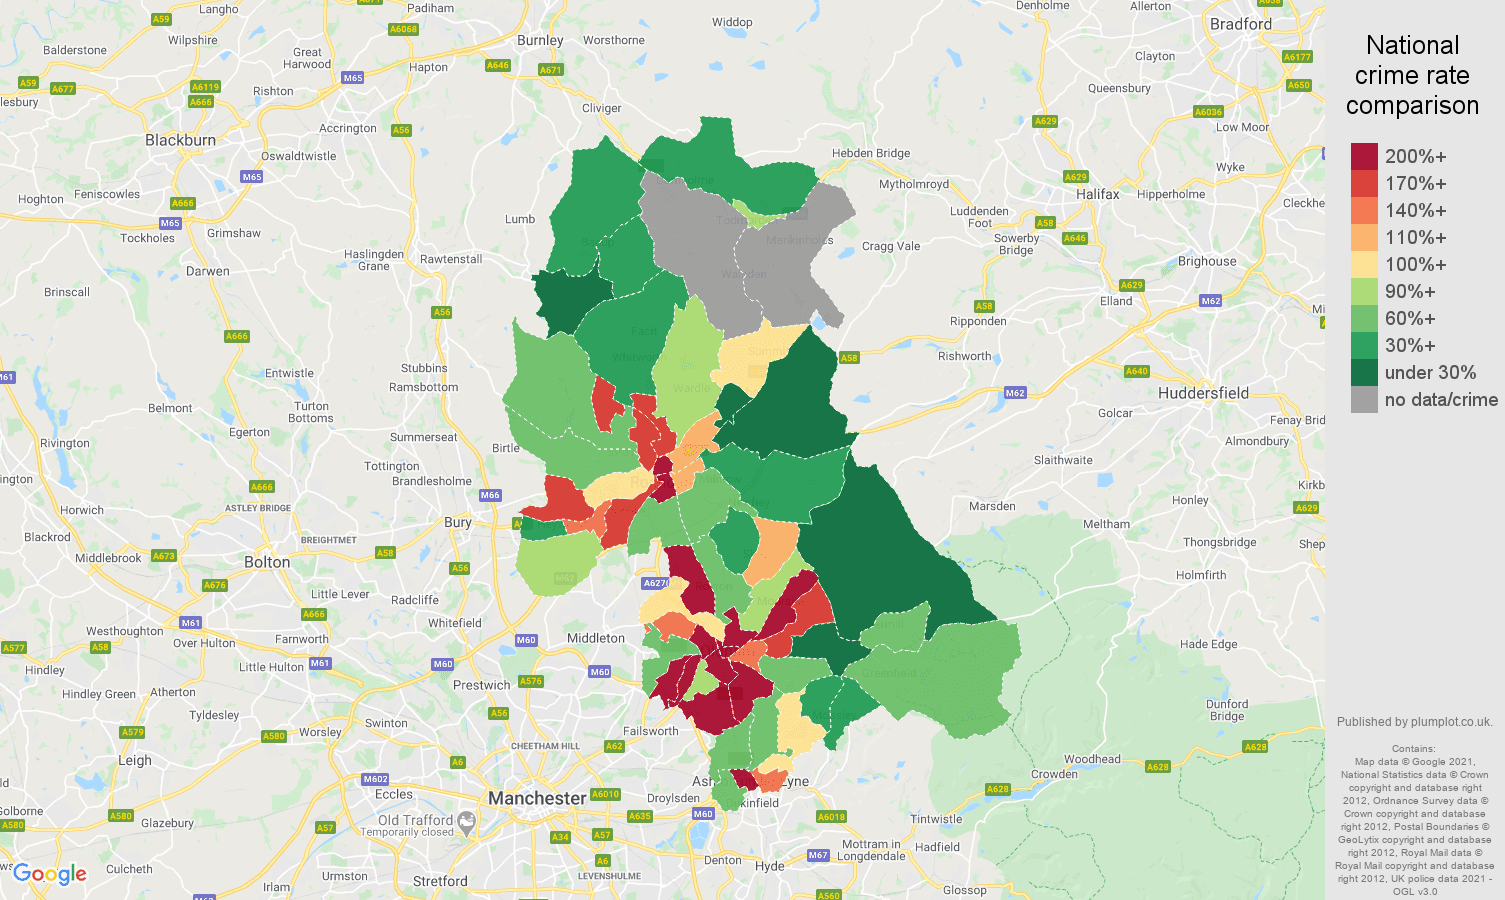 Oldham robbery crime rate comparison map